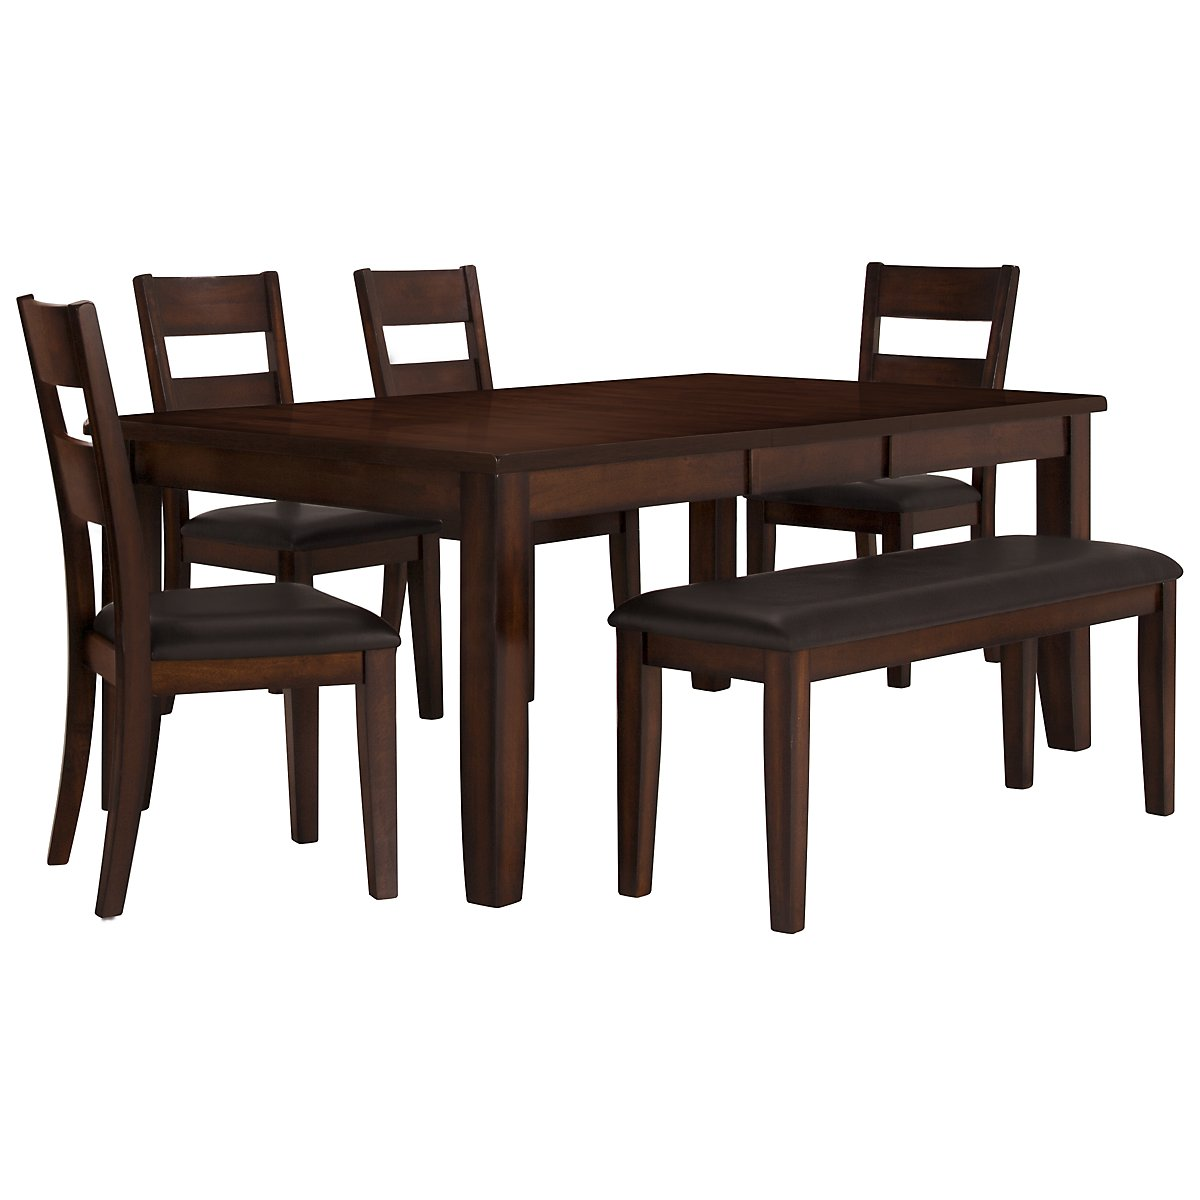 Rectangle Dining Room Tables City Furniture Mango2 Dark Tone Rectangular Table 4 Chairs Bench